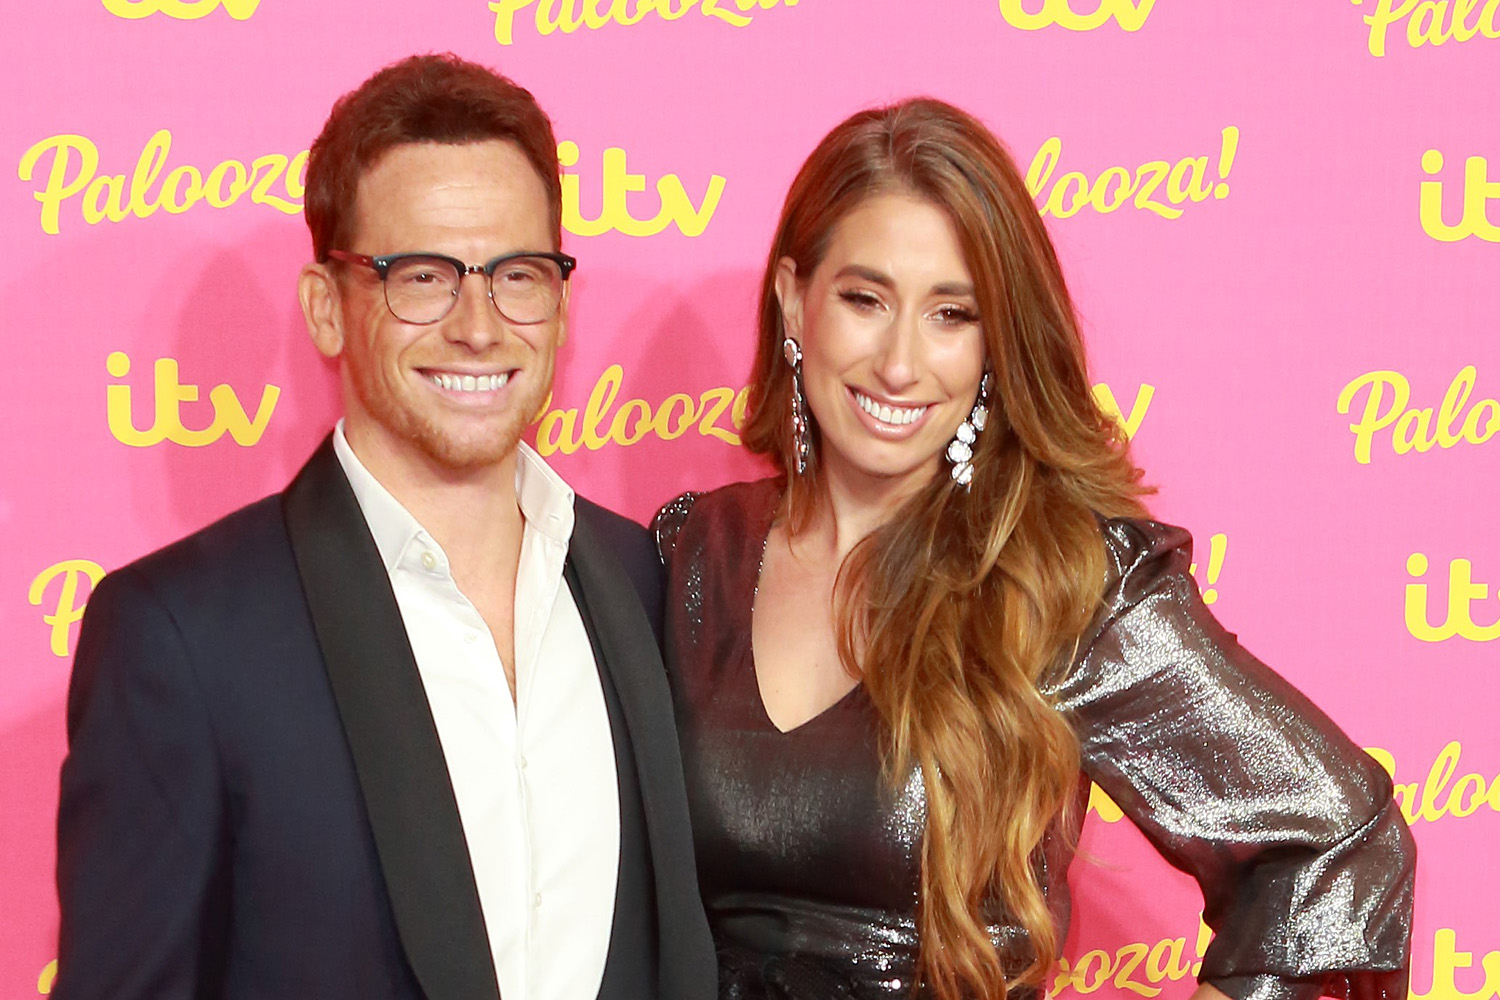 Stacey Solomon compared to a 'sexy Afghan hound' by Joe Swash after makeover